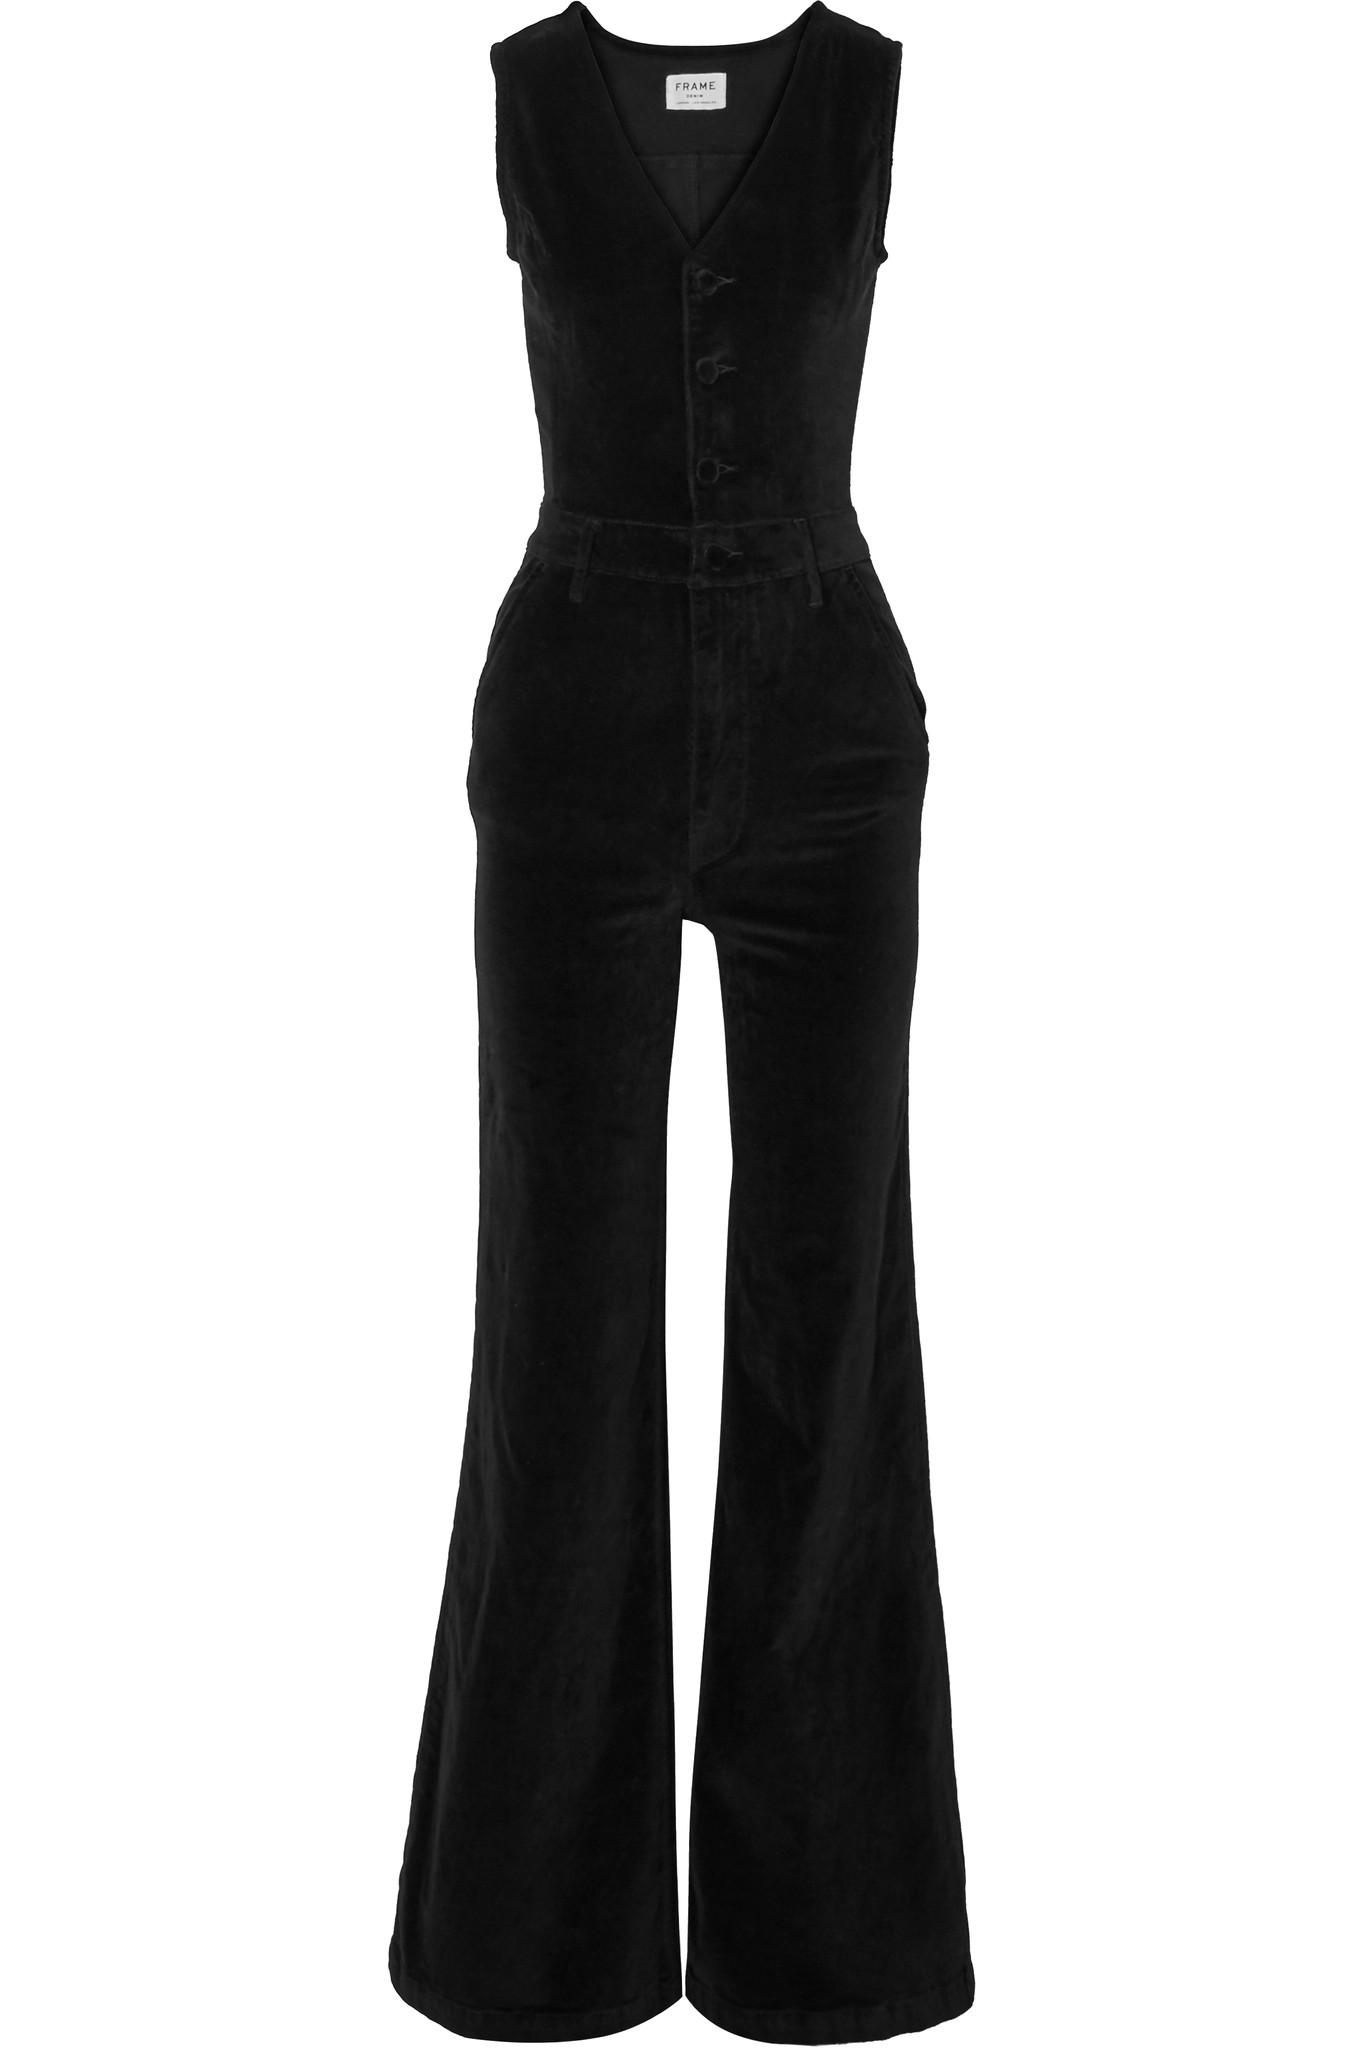 Frame Velvet Jumpsuit in Black - Lyst